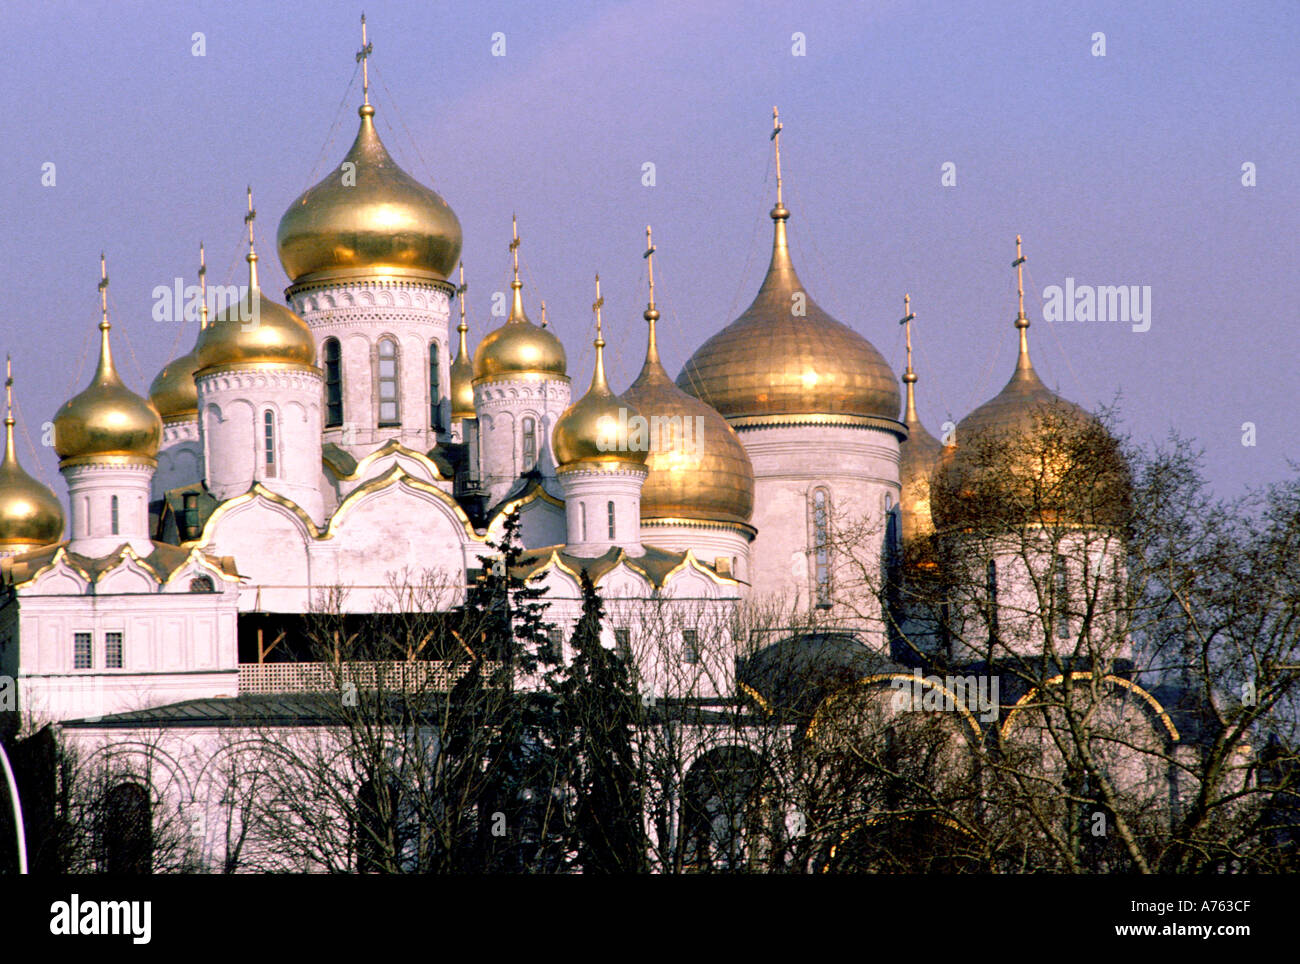 Moscow from across the river - Stock Image